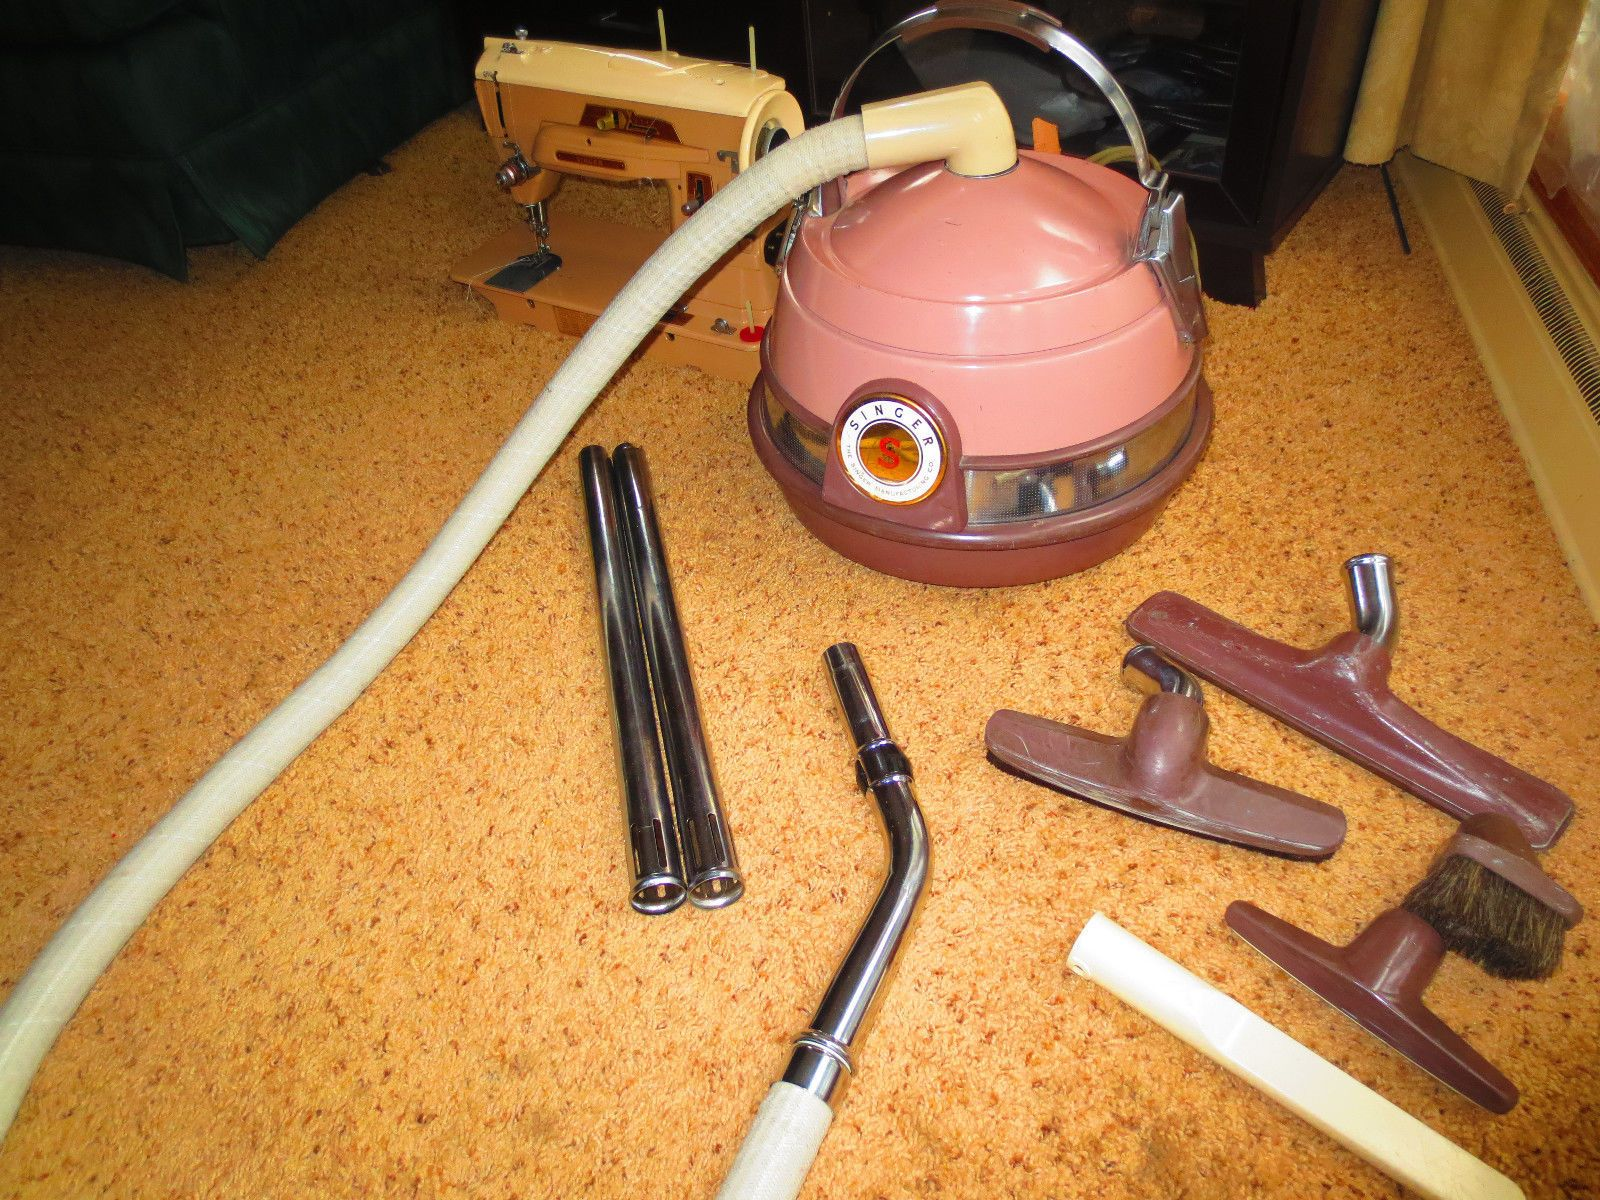 The Kirby Ezee Vacuum Model Was The Kirby Company S First Vacuum Cleaner Developed In 1914 Vintage Vacuum Cleaner Vintage Laundry Vintage Appliances